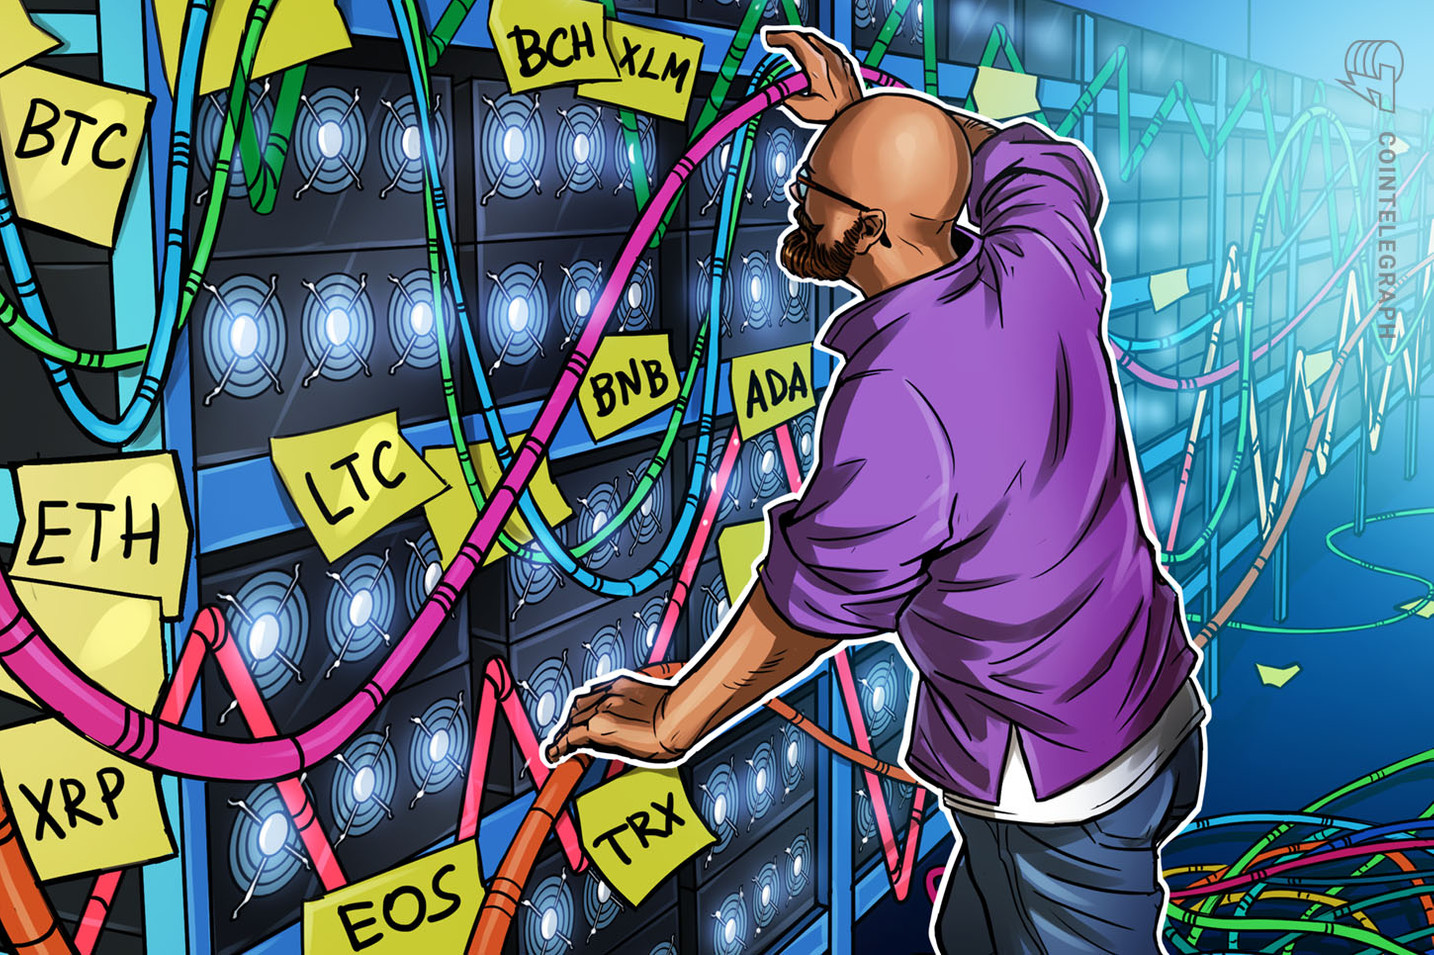 Bitcoin, Ethereum, Ripple, Bitcoin Cash, EOS, Litecoin, Binance Coin, Stellar, Cardano, TRON: Price Analysis April 24